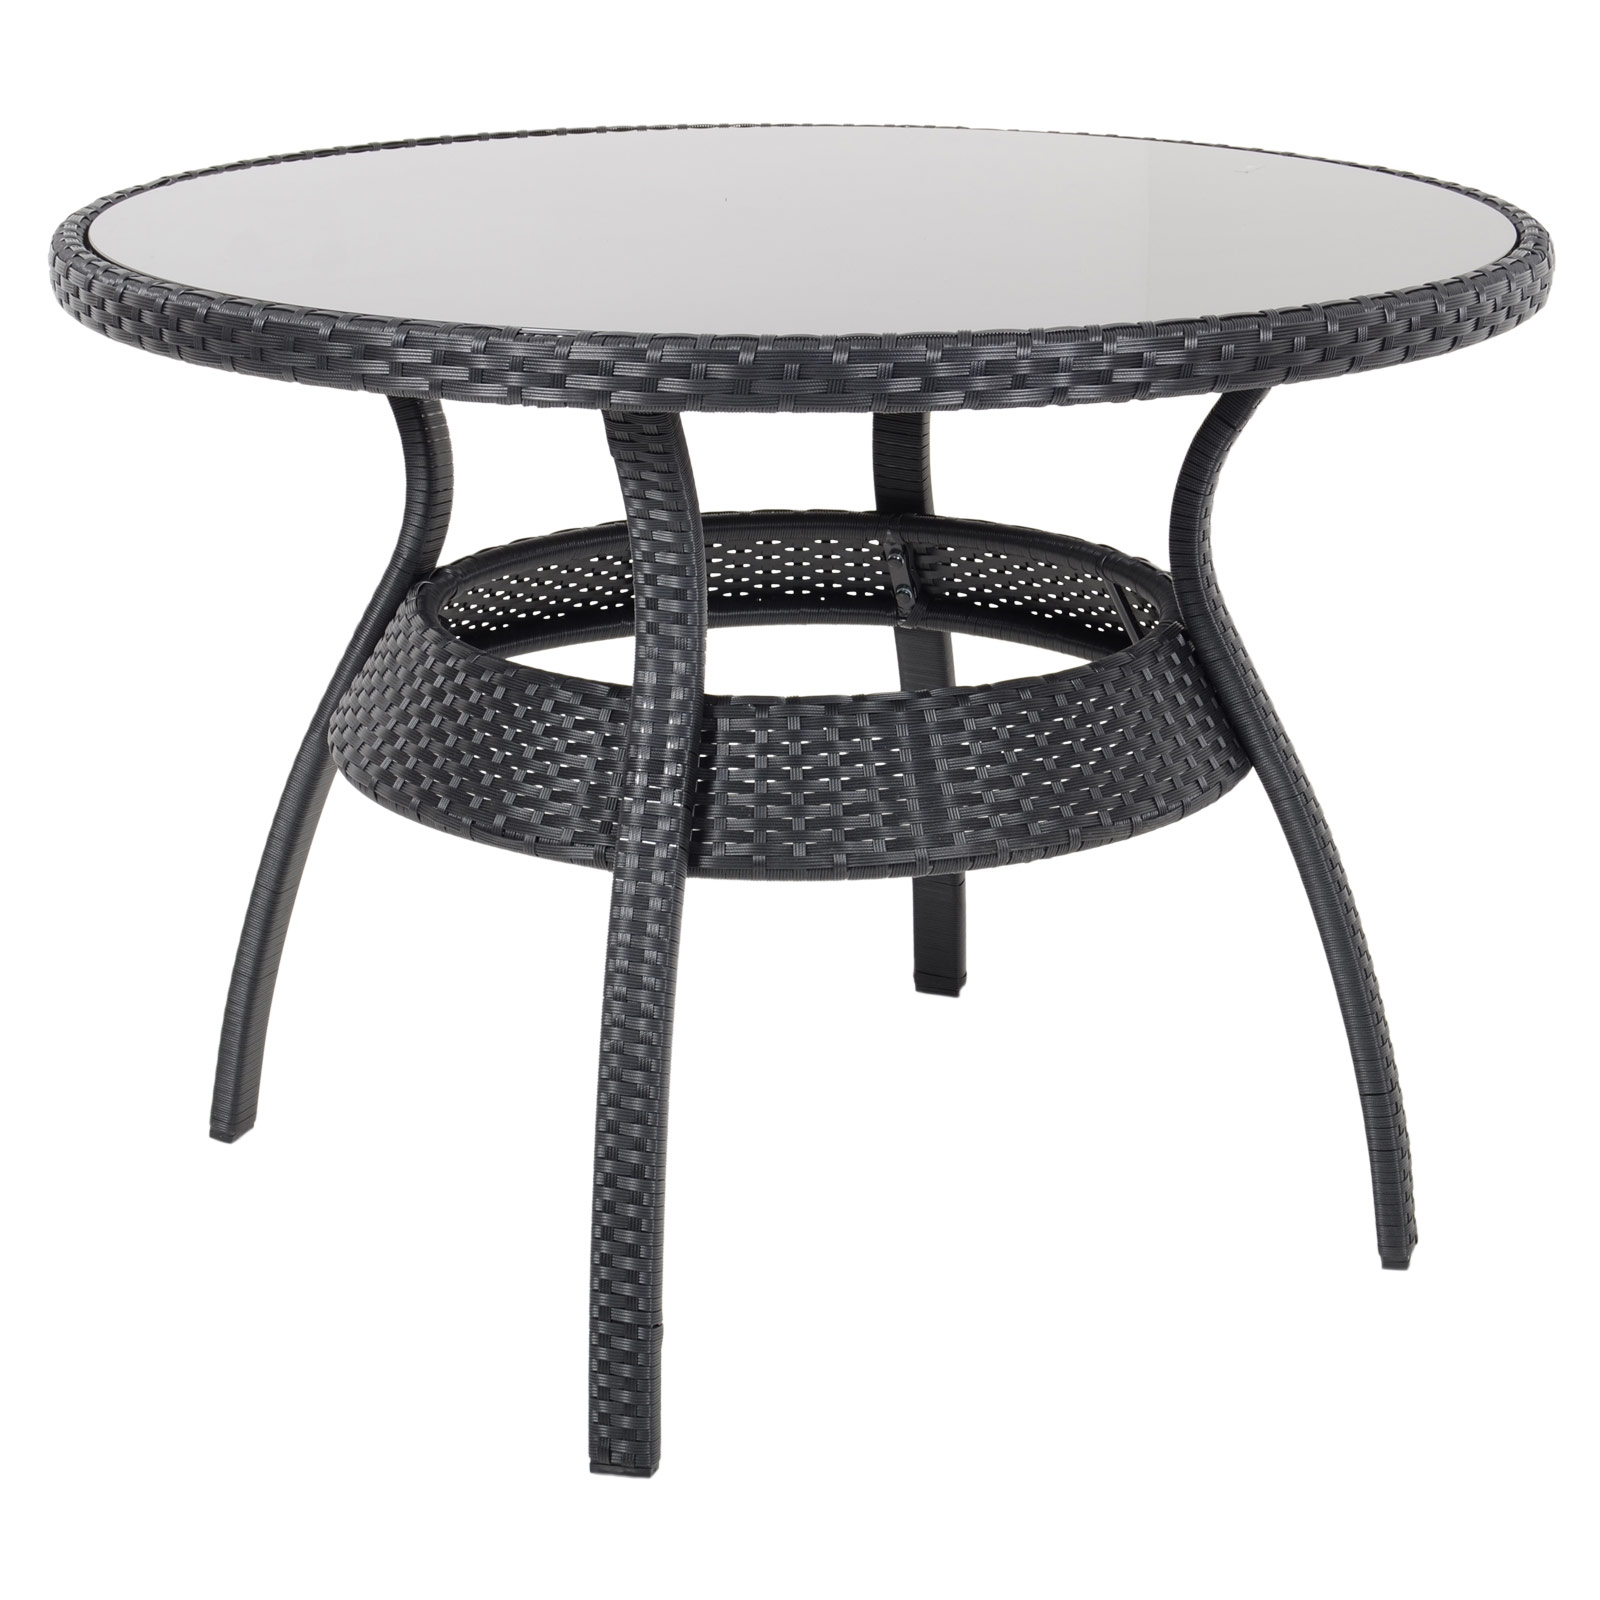 Black Patio Chairs Ravenna Dining Table 4 Chairs Black Rattan Wicker